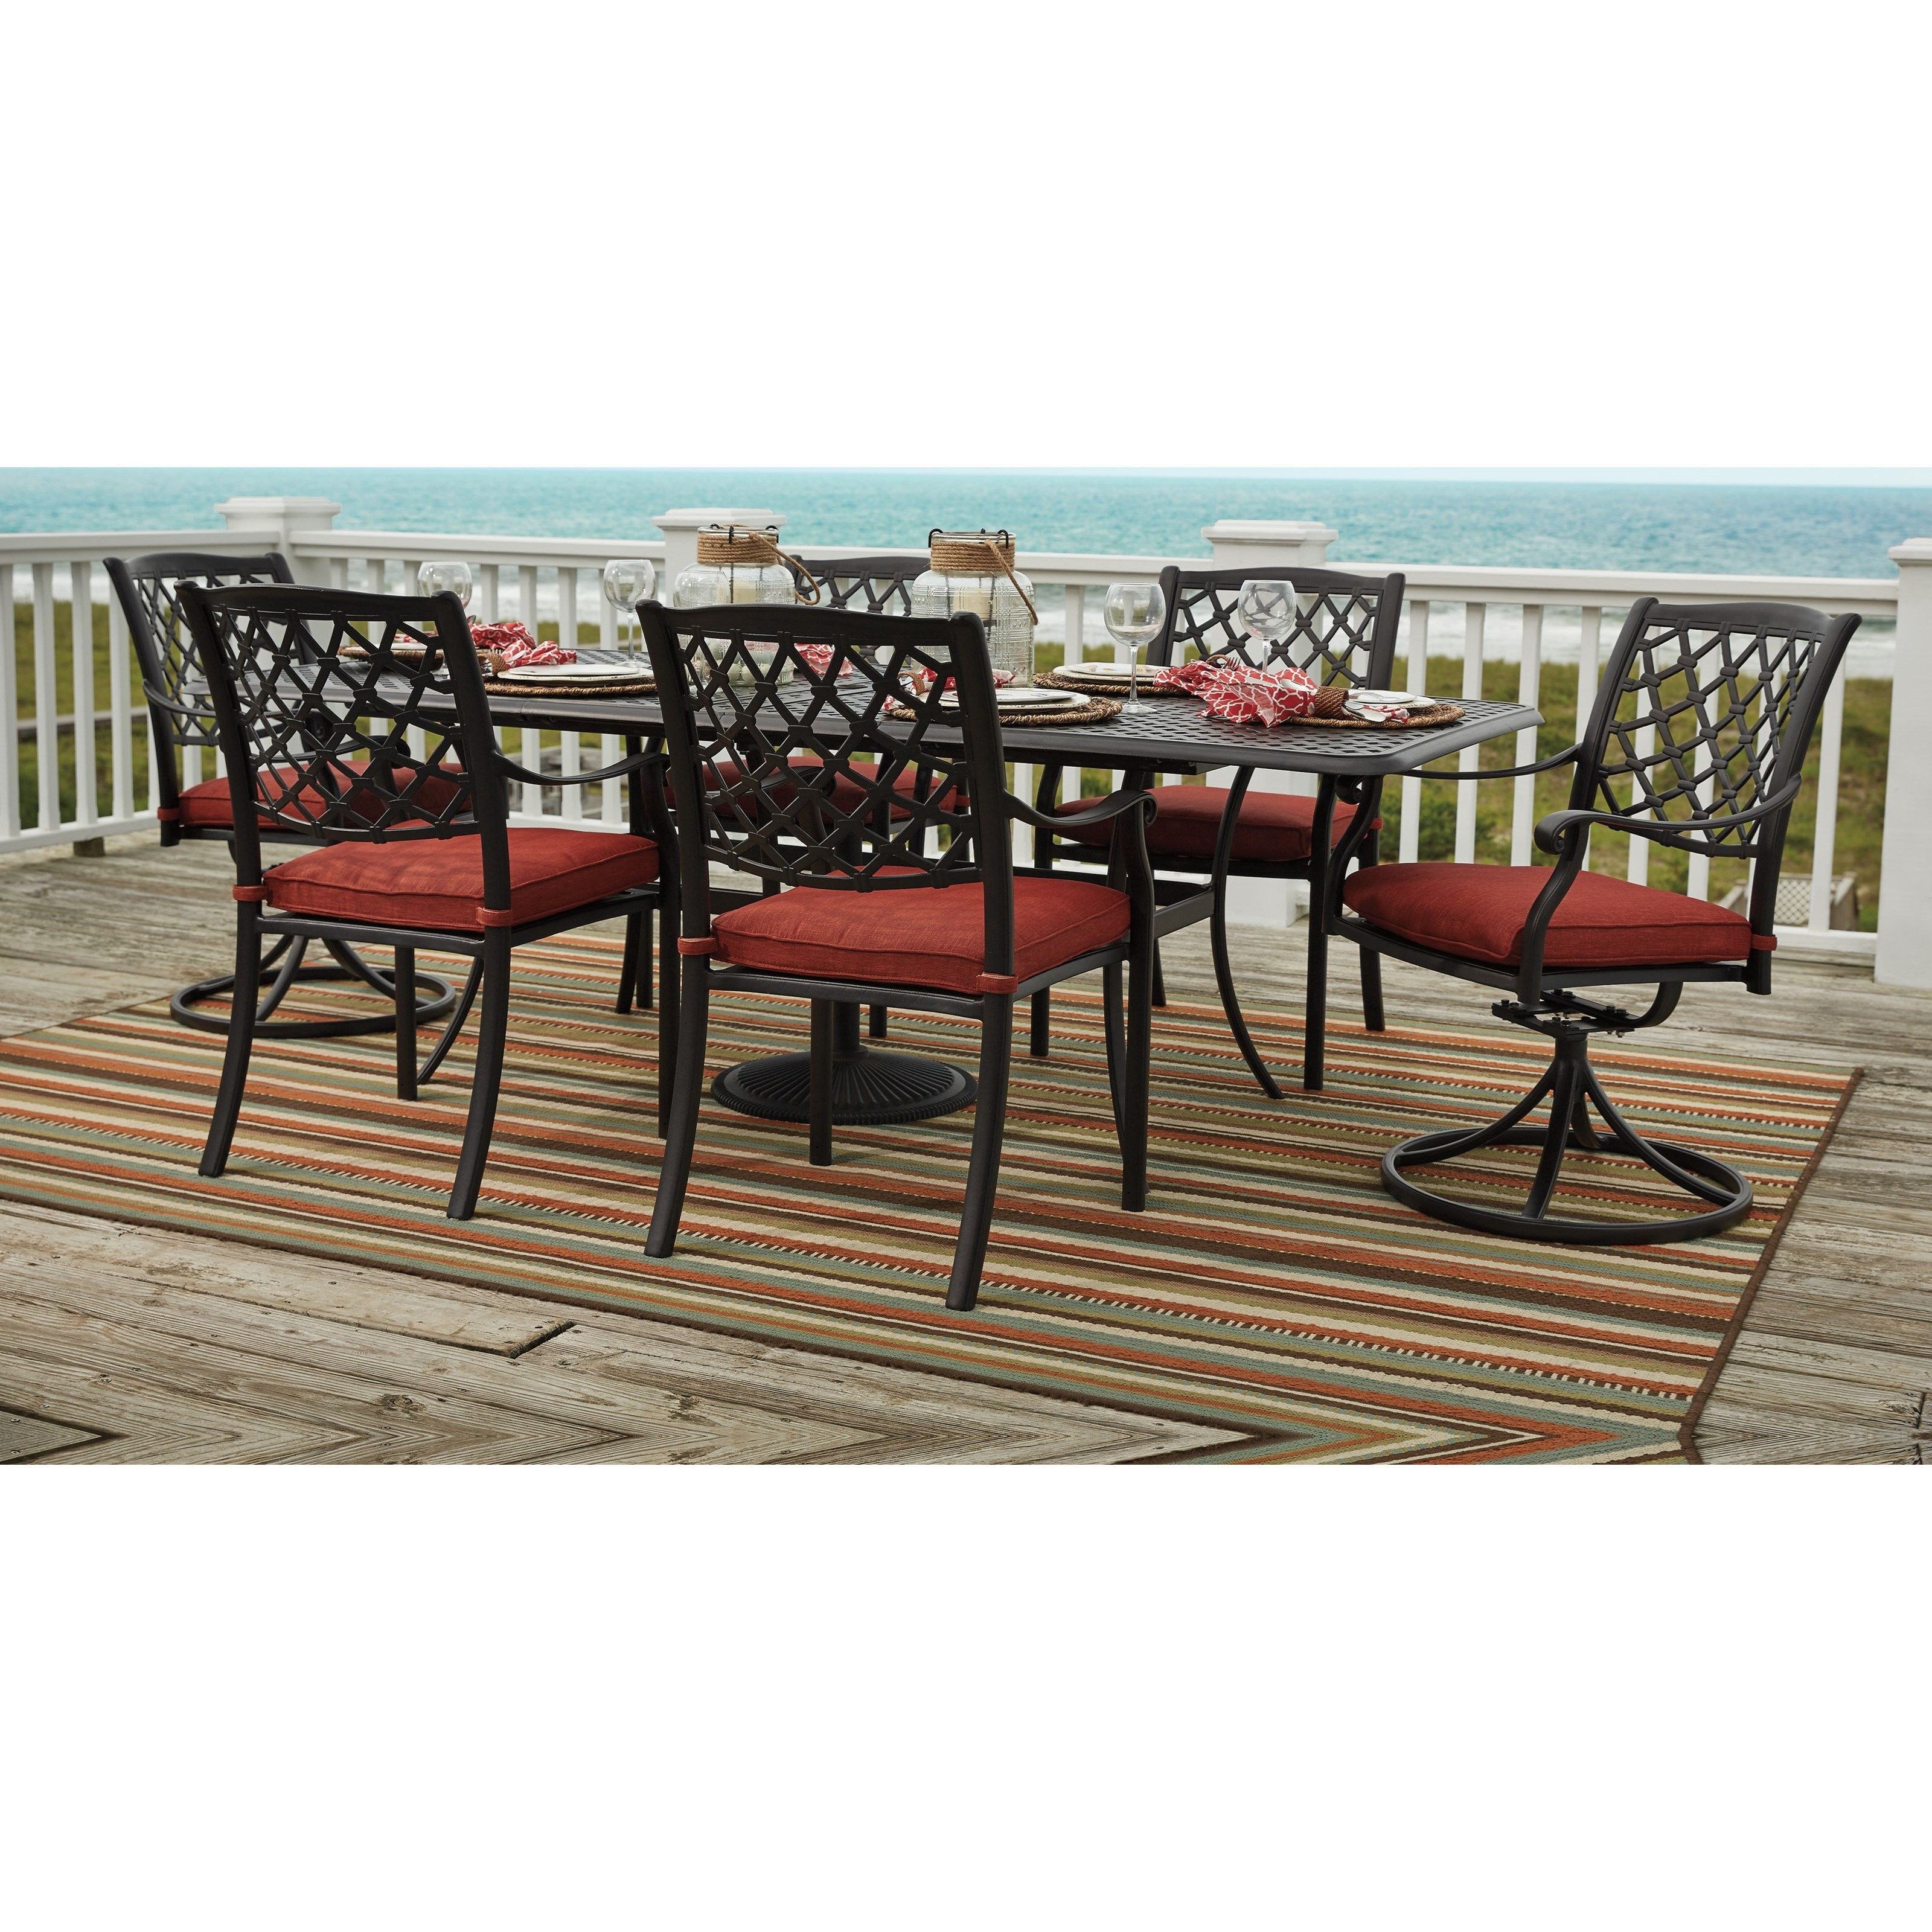 Signature Design by Ashley Tanglevale Outdoor Dining Table Set Household Fu